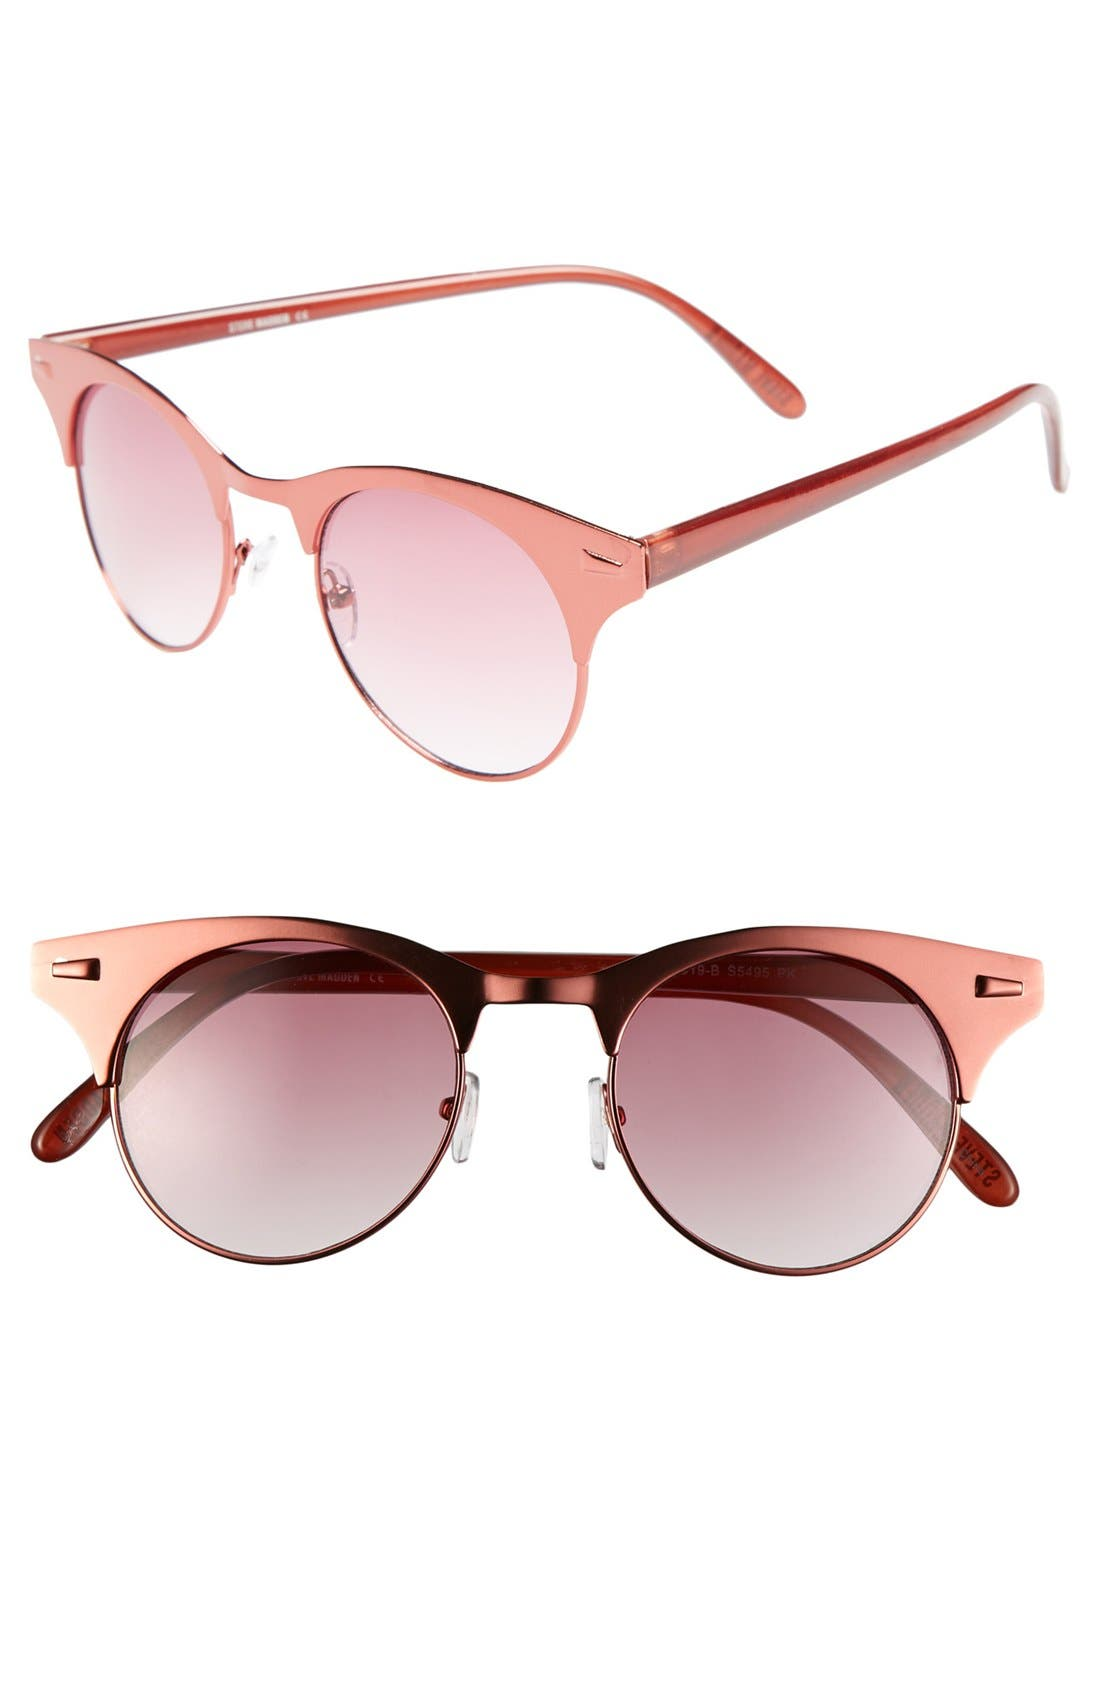 Alternate Image 1 Selected - Steve Madden 49mm Retro Metal Sunglasses